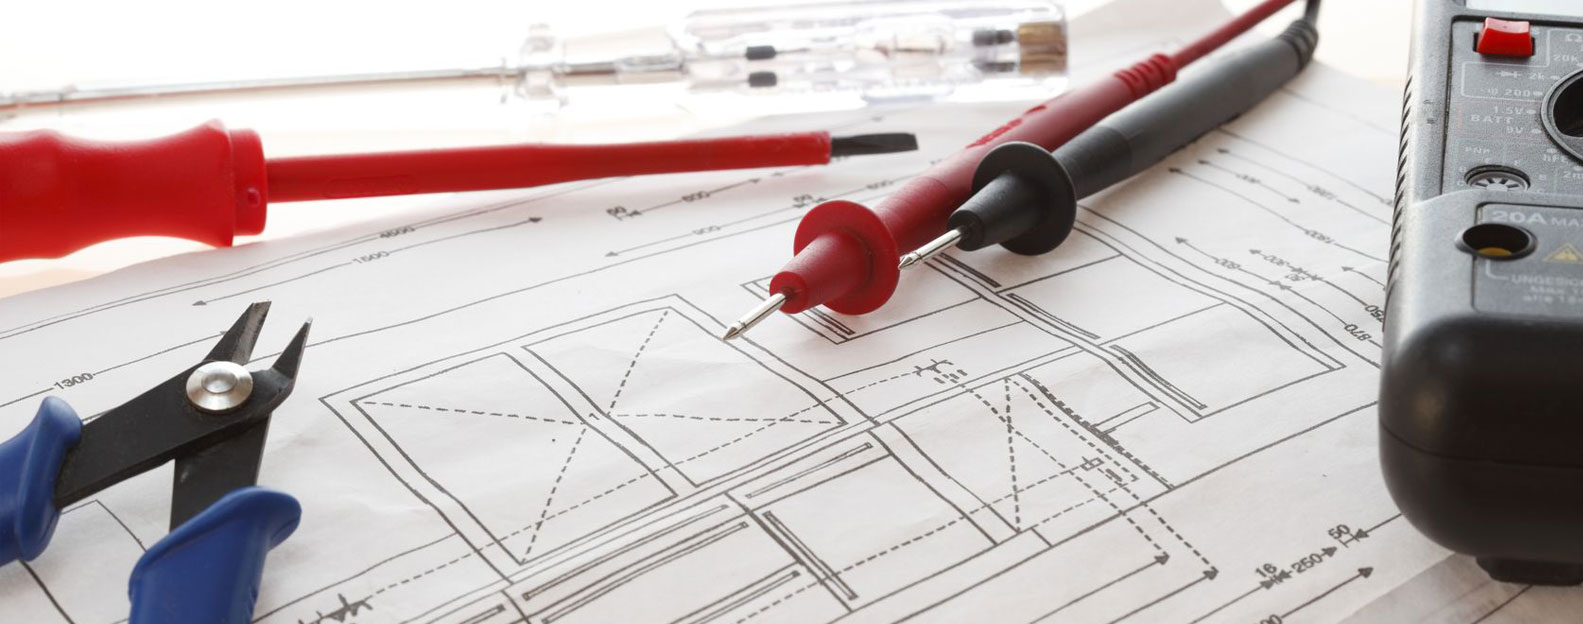 Electrical Design Services : Abco south electrical construction and design llc